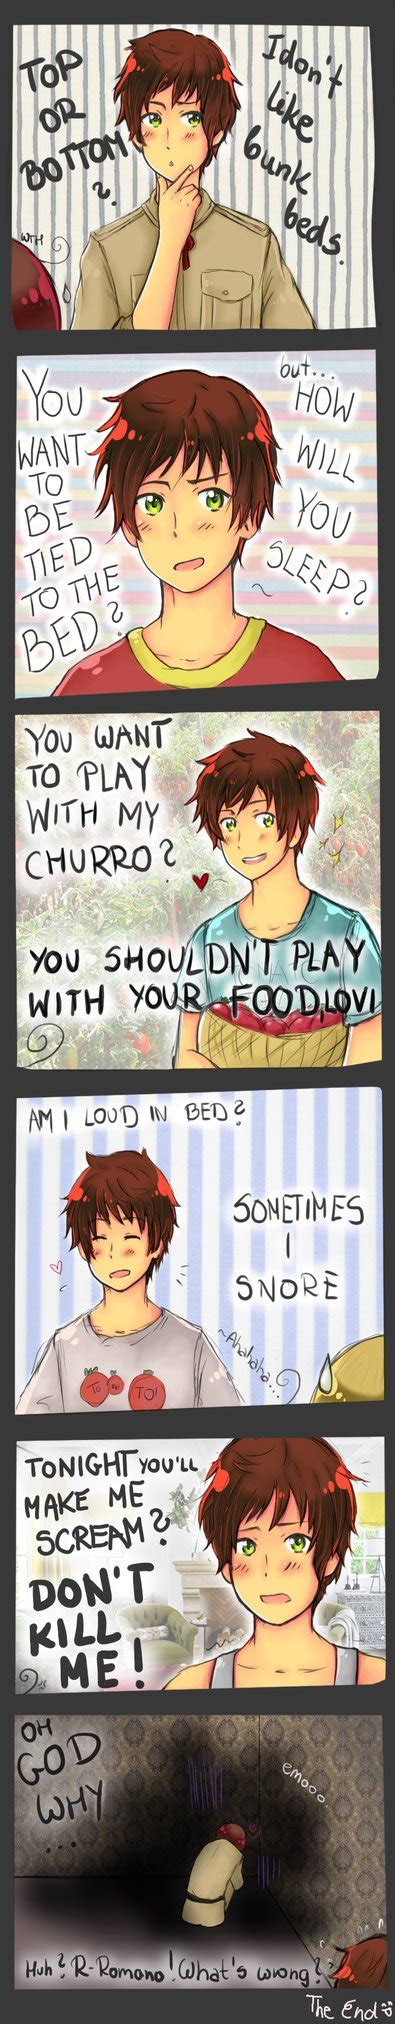 Spain Meme - aph spain meme by jaskierka on deviantart